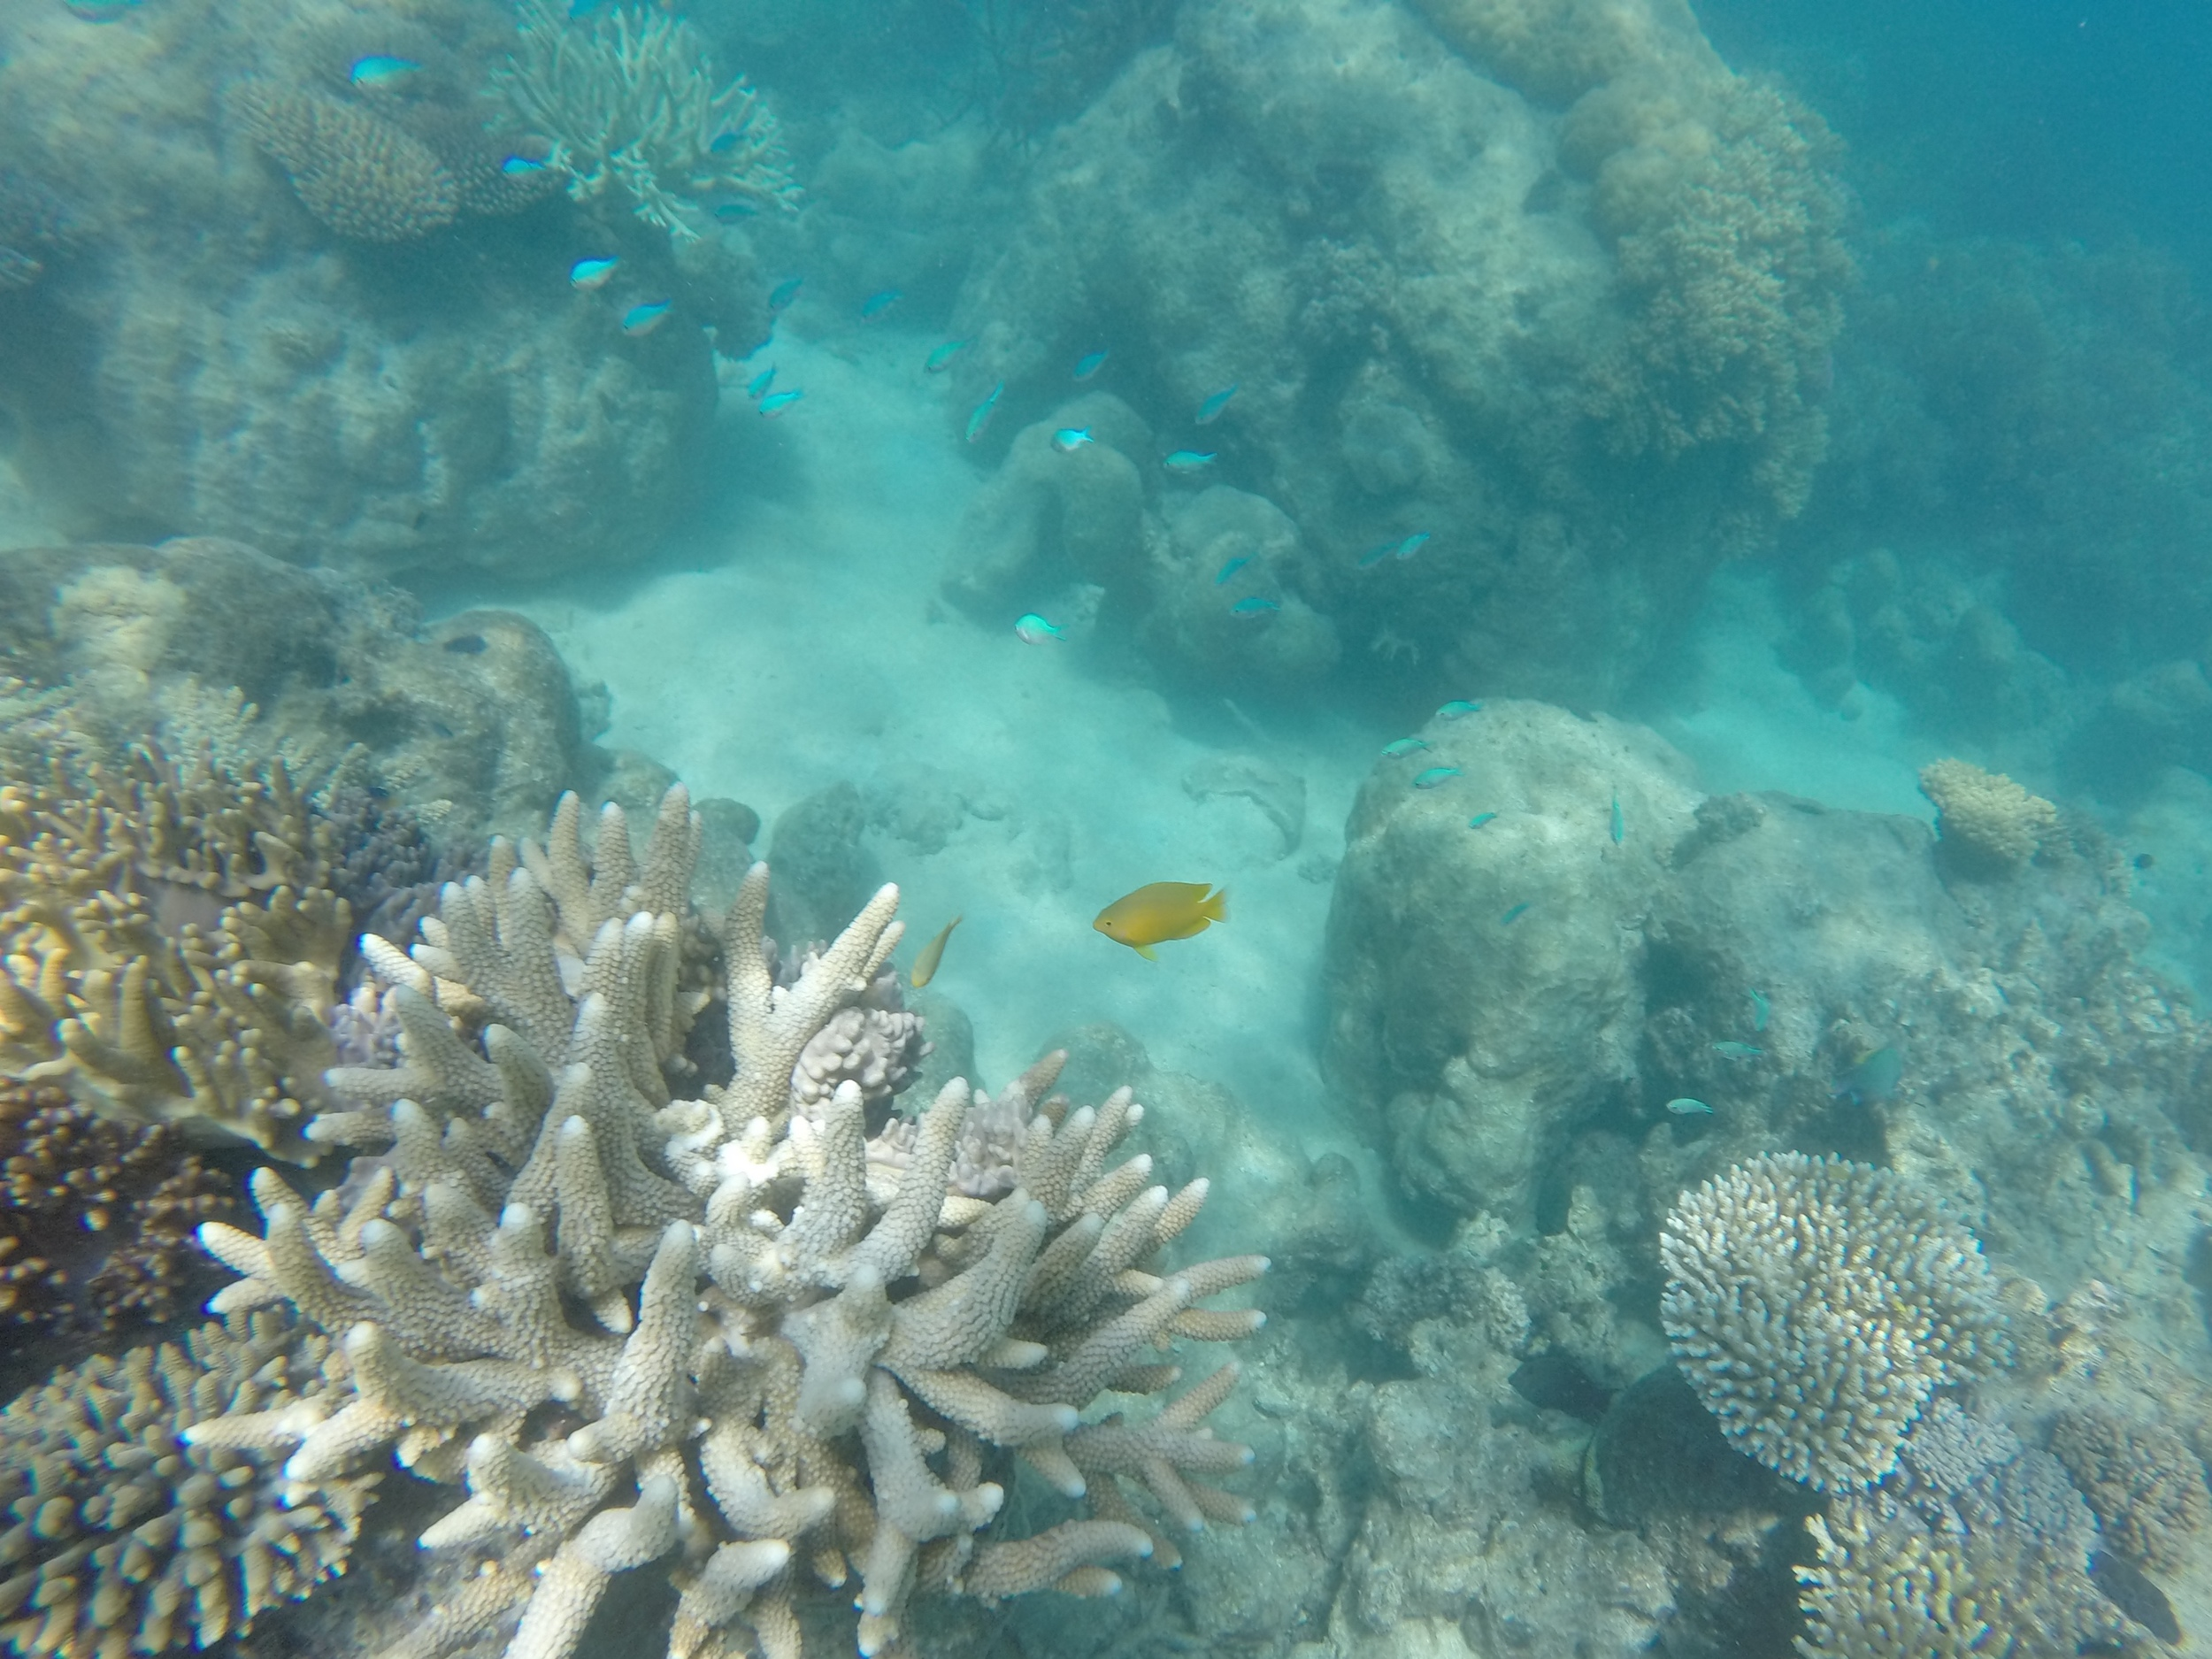 Corals and small fish on the reef.